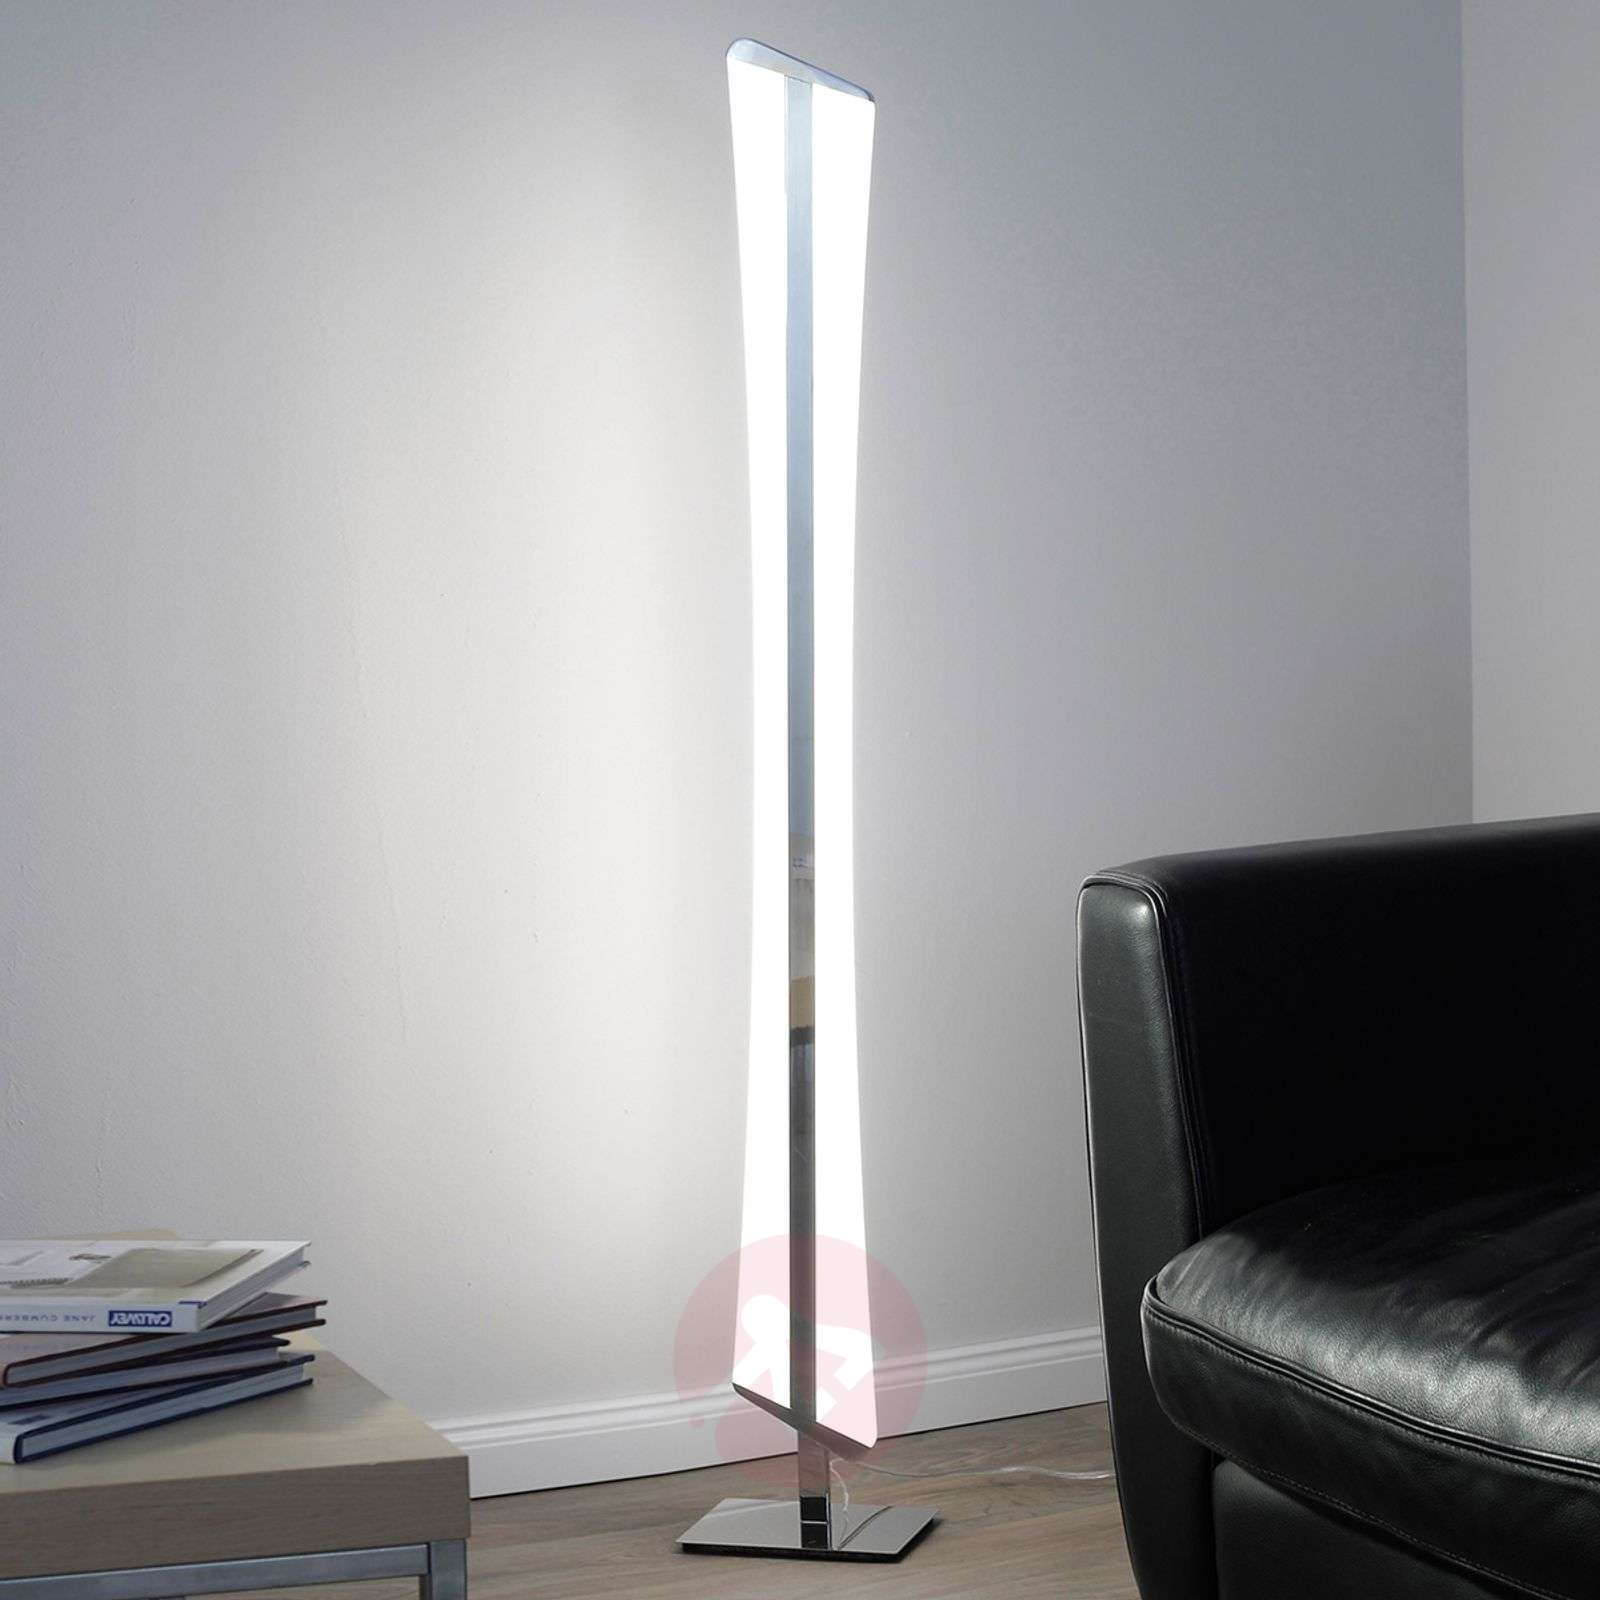 riller een led staande lamp met moderne techniek. Black Bedroom Furniture Sets. Home Design Ideas